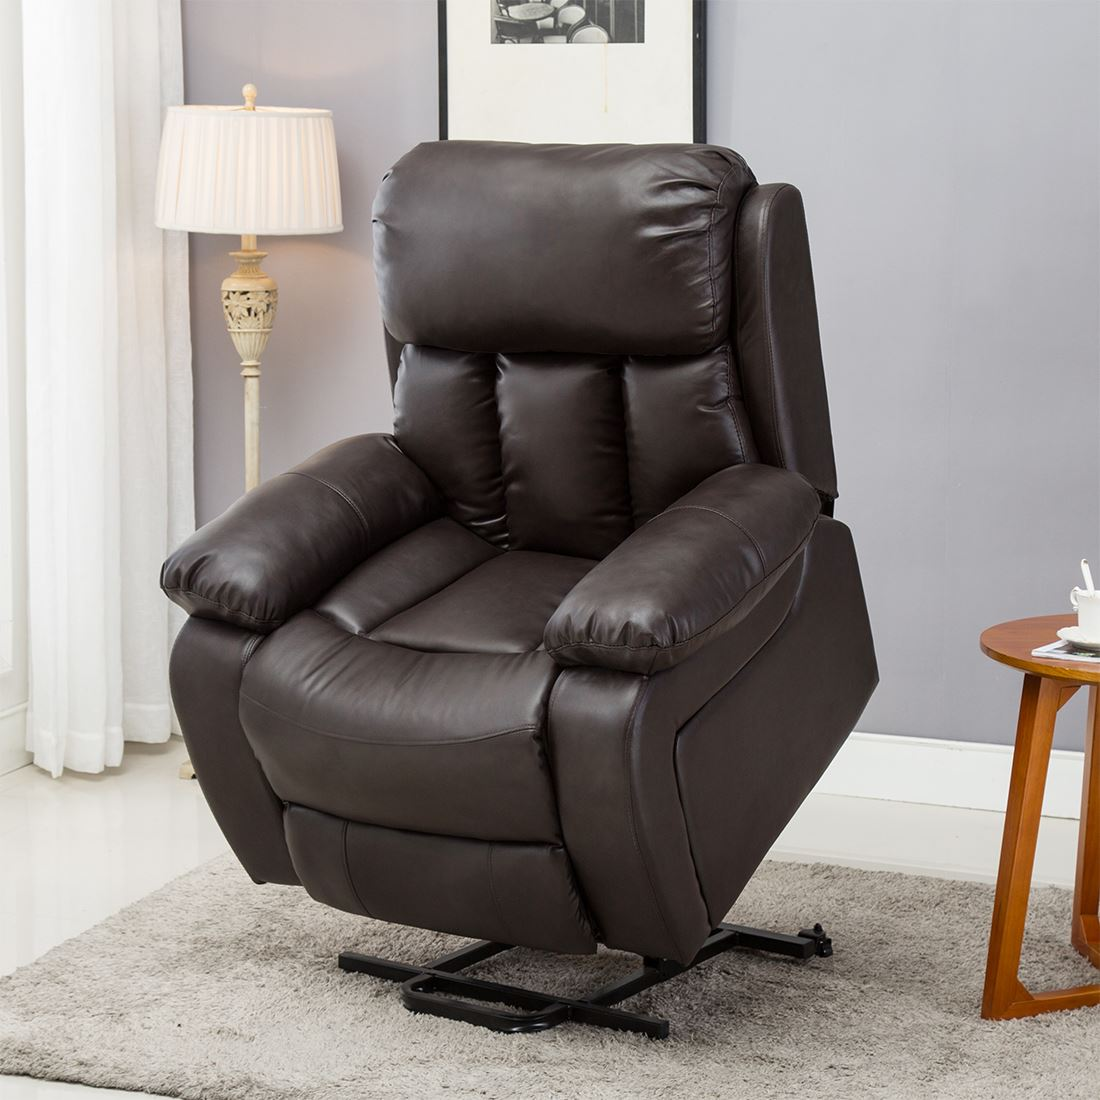 CHESTER-ELECTRIC-RISE-LEATHER-RECLINER-POWER-ARMCHAIR-HEATED-MASSAGE-SOFA-CHAIR thumbnail 10